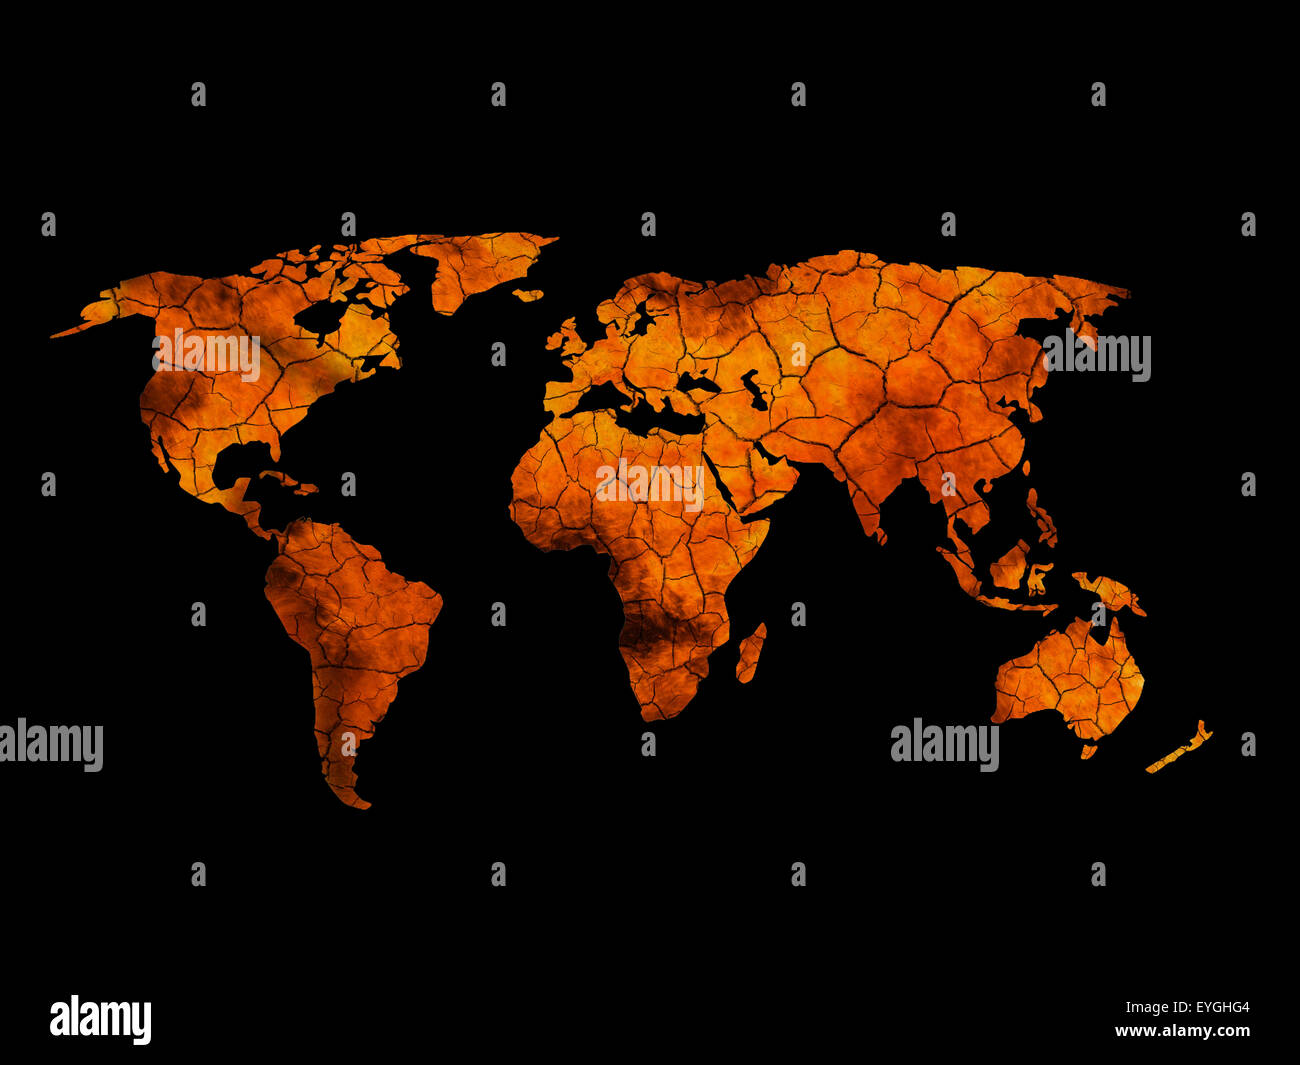 Cracked and scorched earth map of the world. - Stock Image